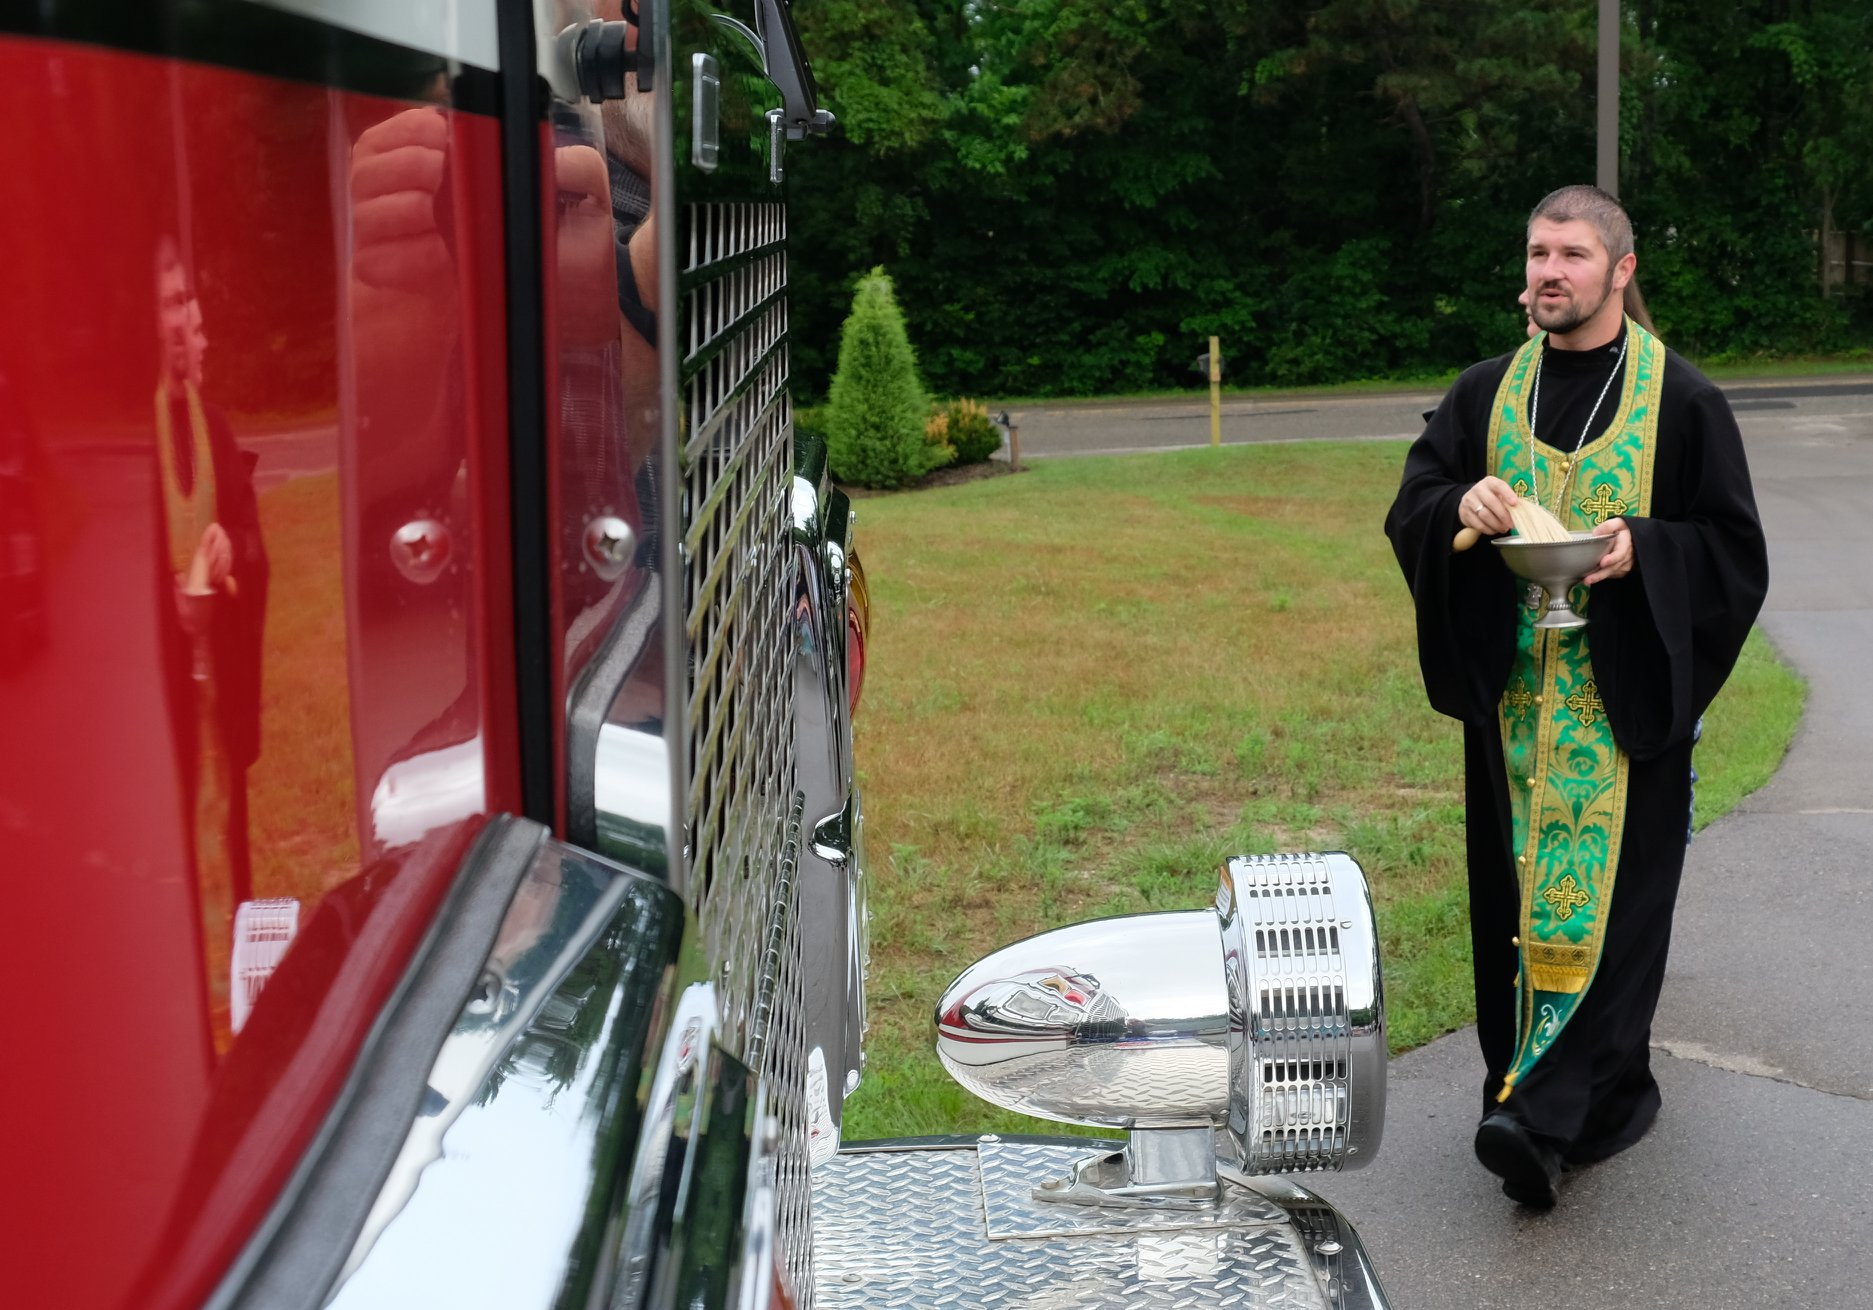 priest walking to fire truck to bless with holy water